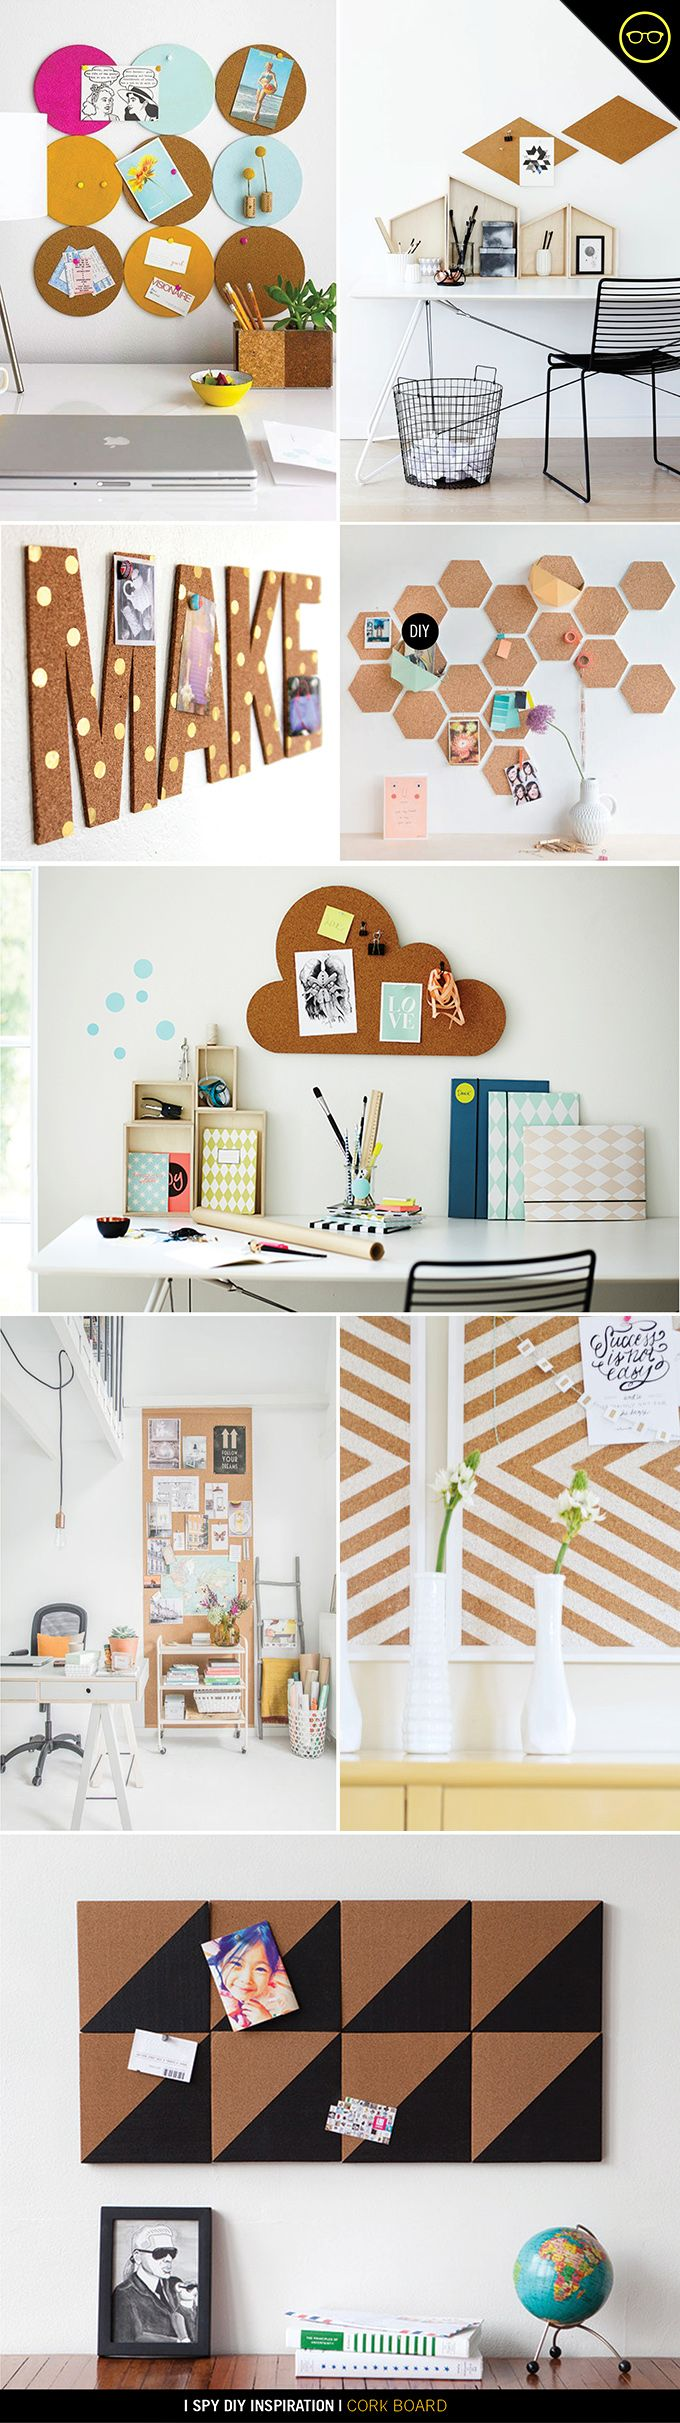 inspiration cork boards i spy diy workspace goals ideen f rs b ro pinterest die. Black Bedroom Furniture Sets. Home Design Ideas